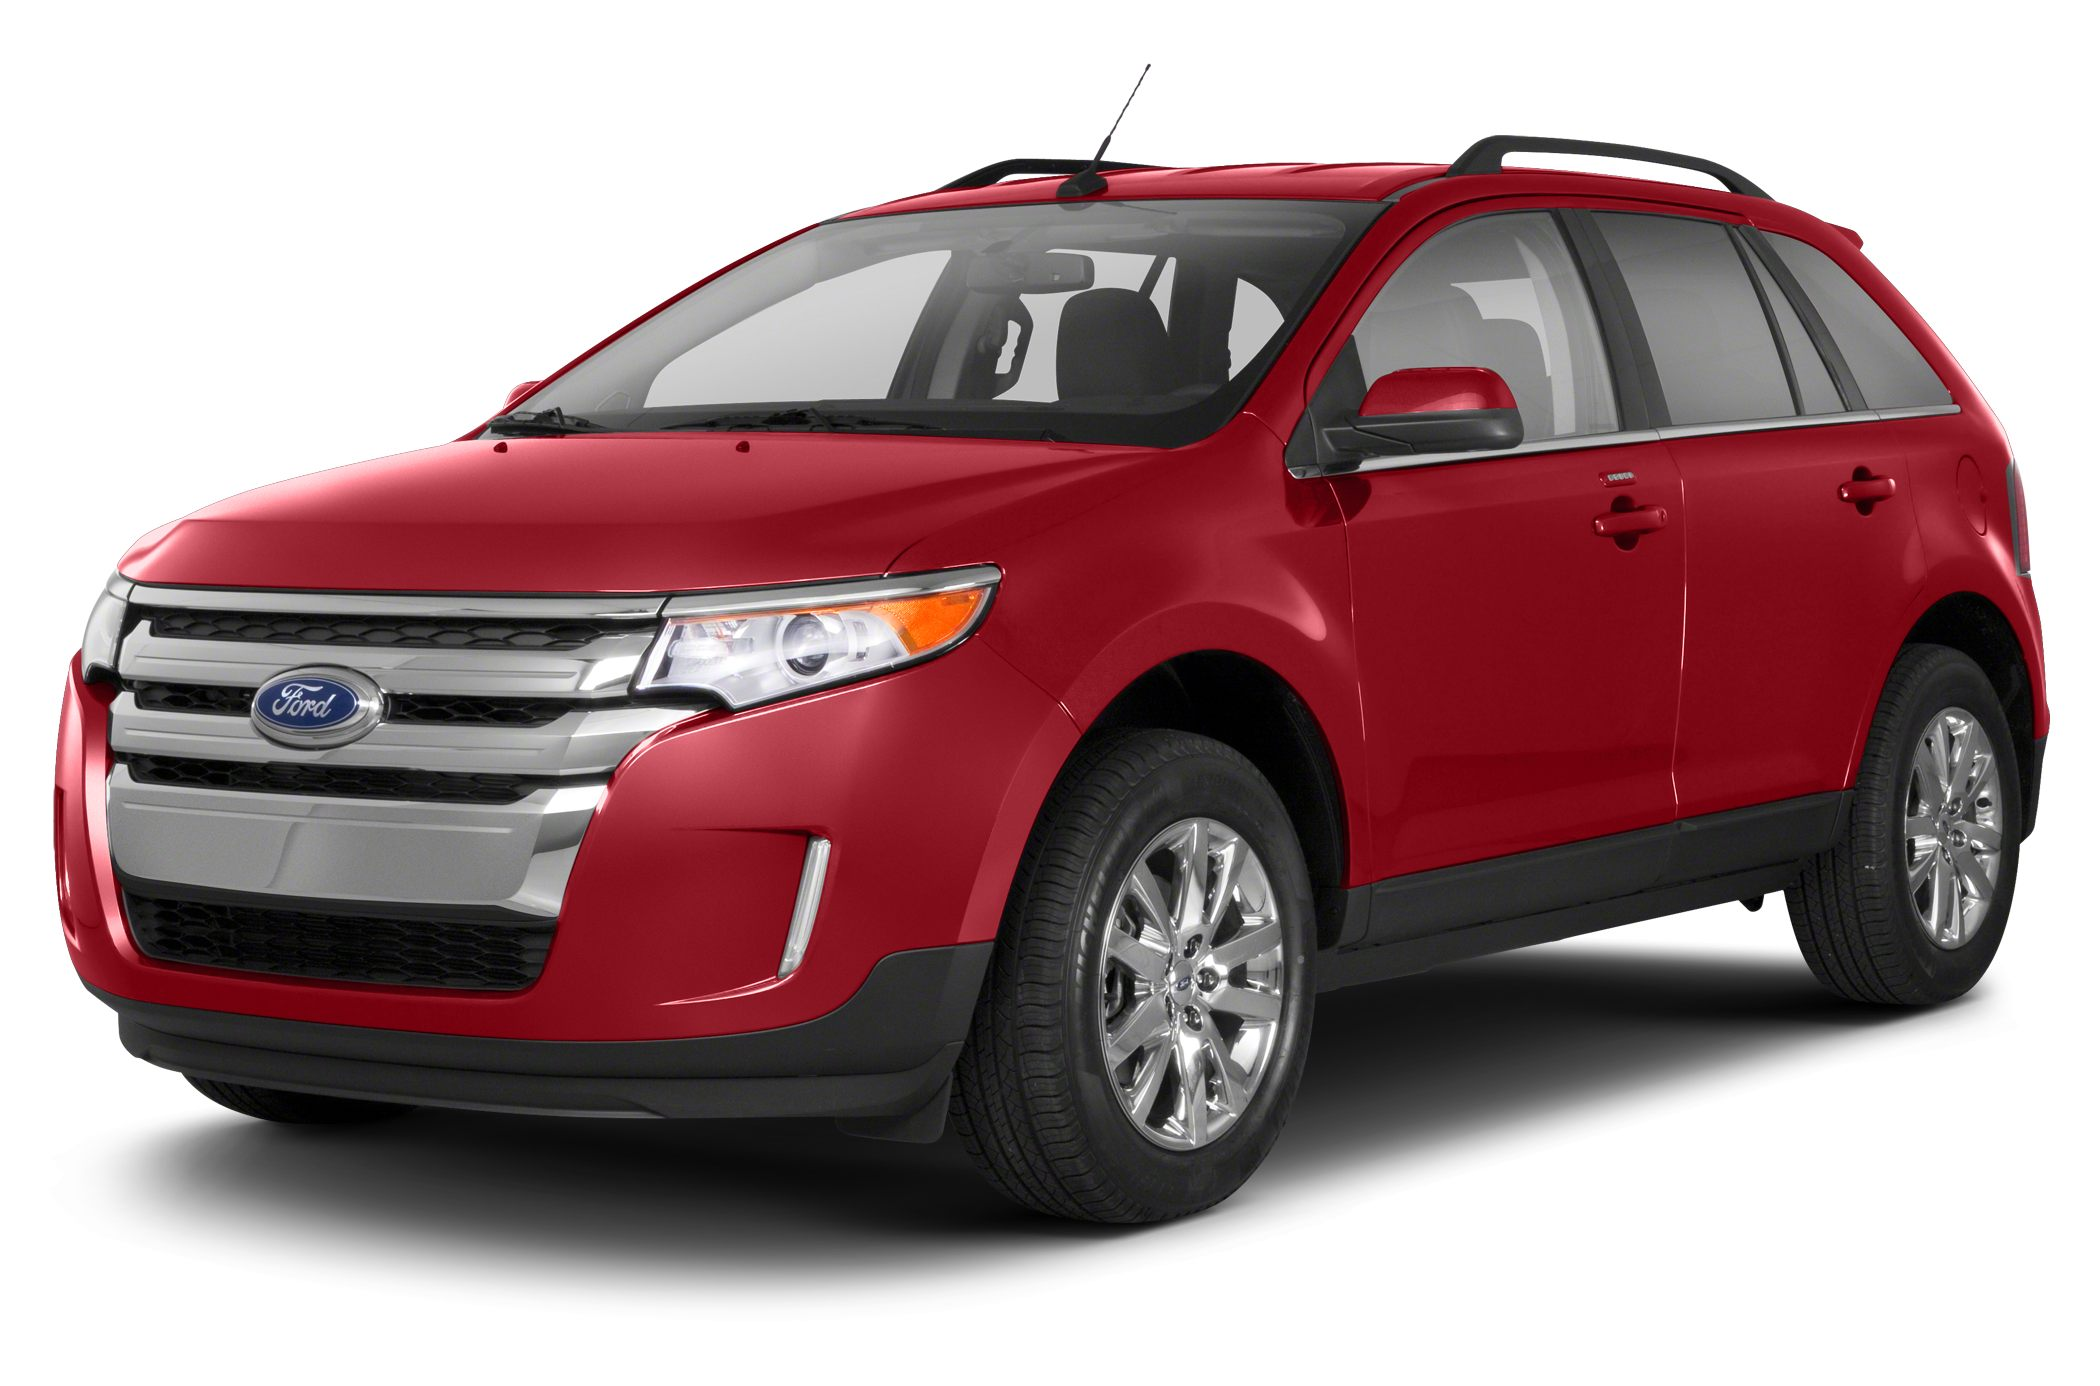 2013 Ford Edge Limited SUV for sale in Gadsden for $27,991 with 19,254 miles